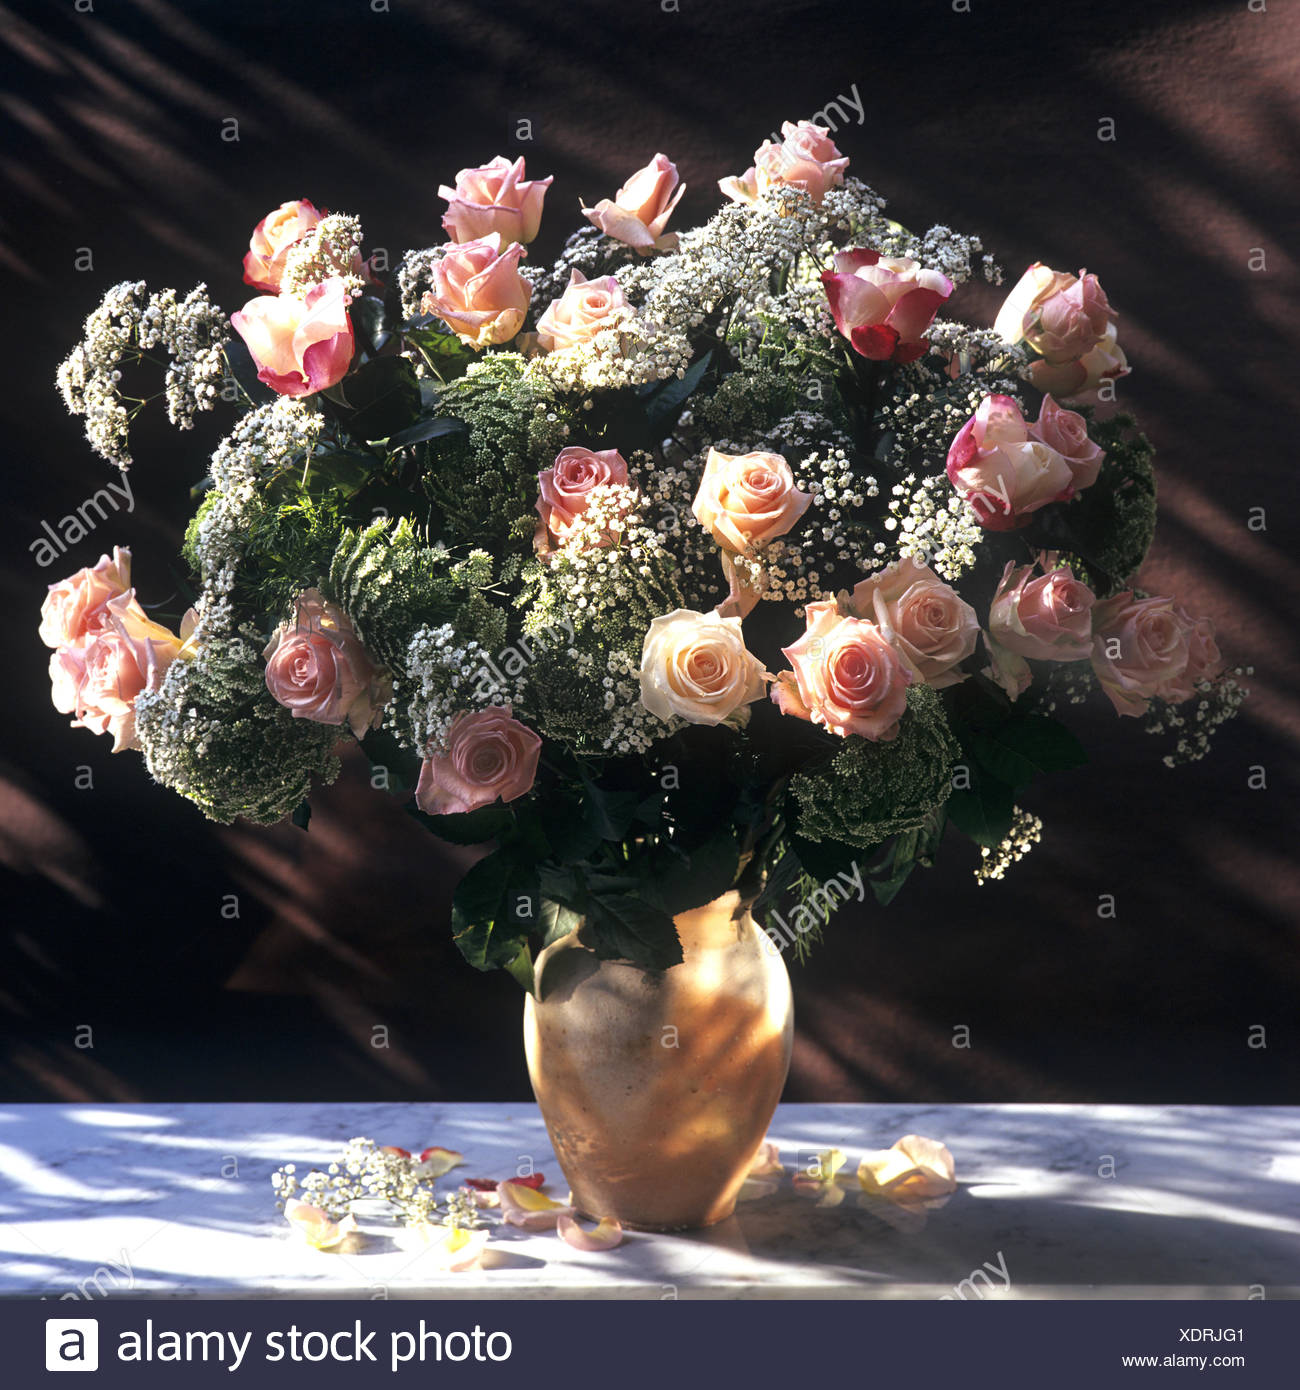 Bouquet bunch of flowers roses stock photo 283875873 alamy bouquet bunch of flowers roses izmirmasajfo